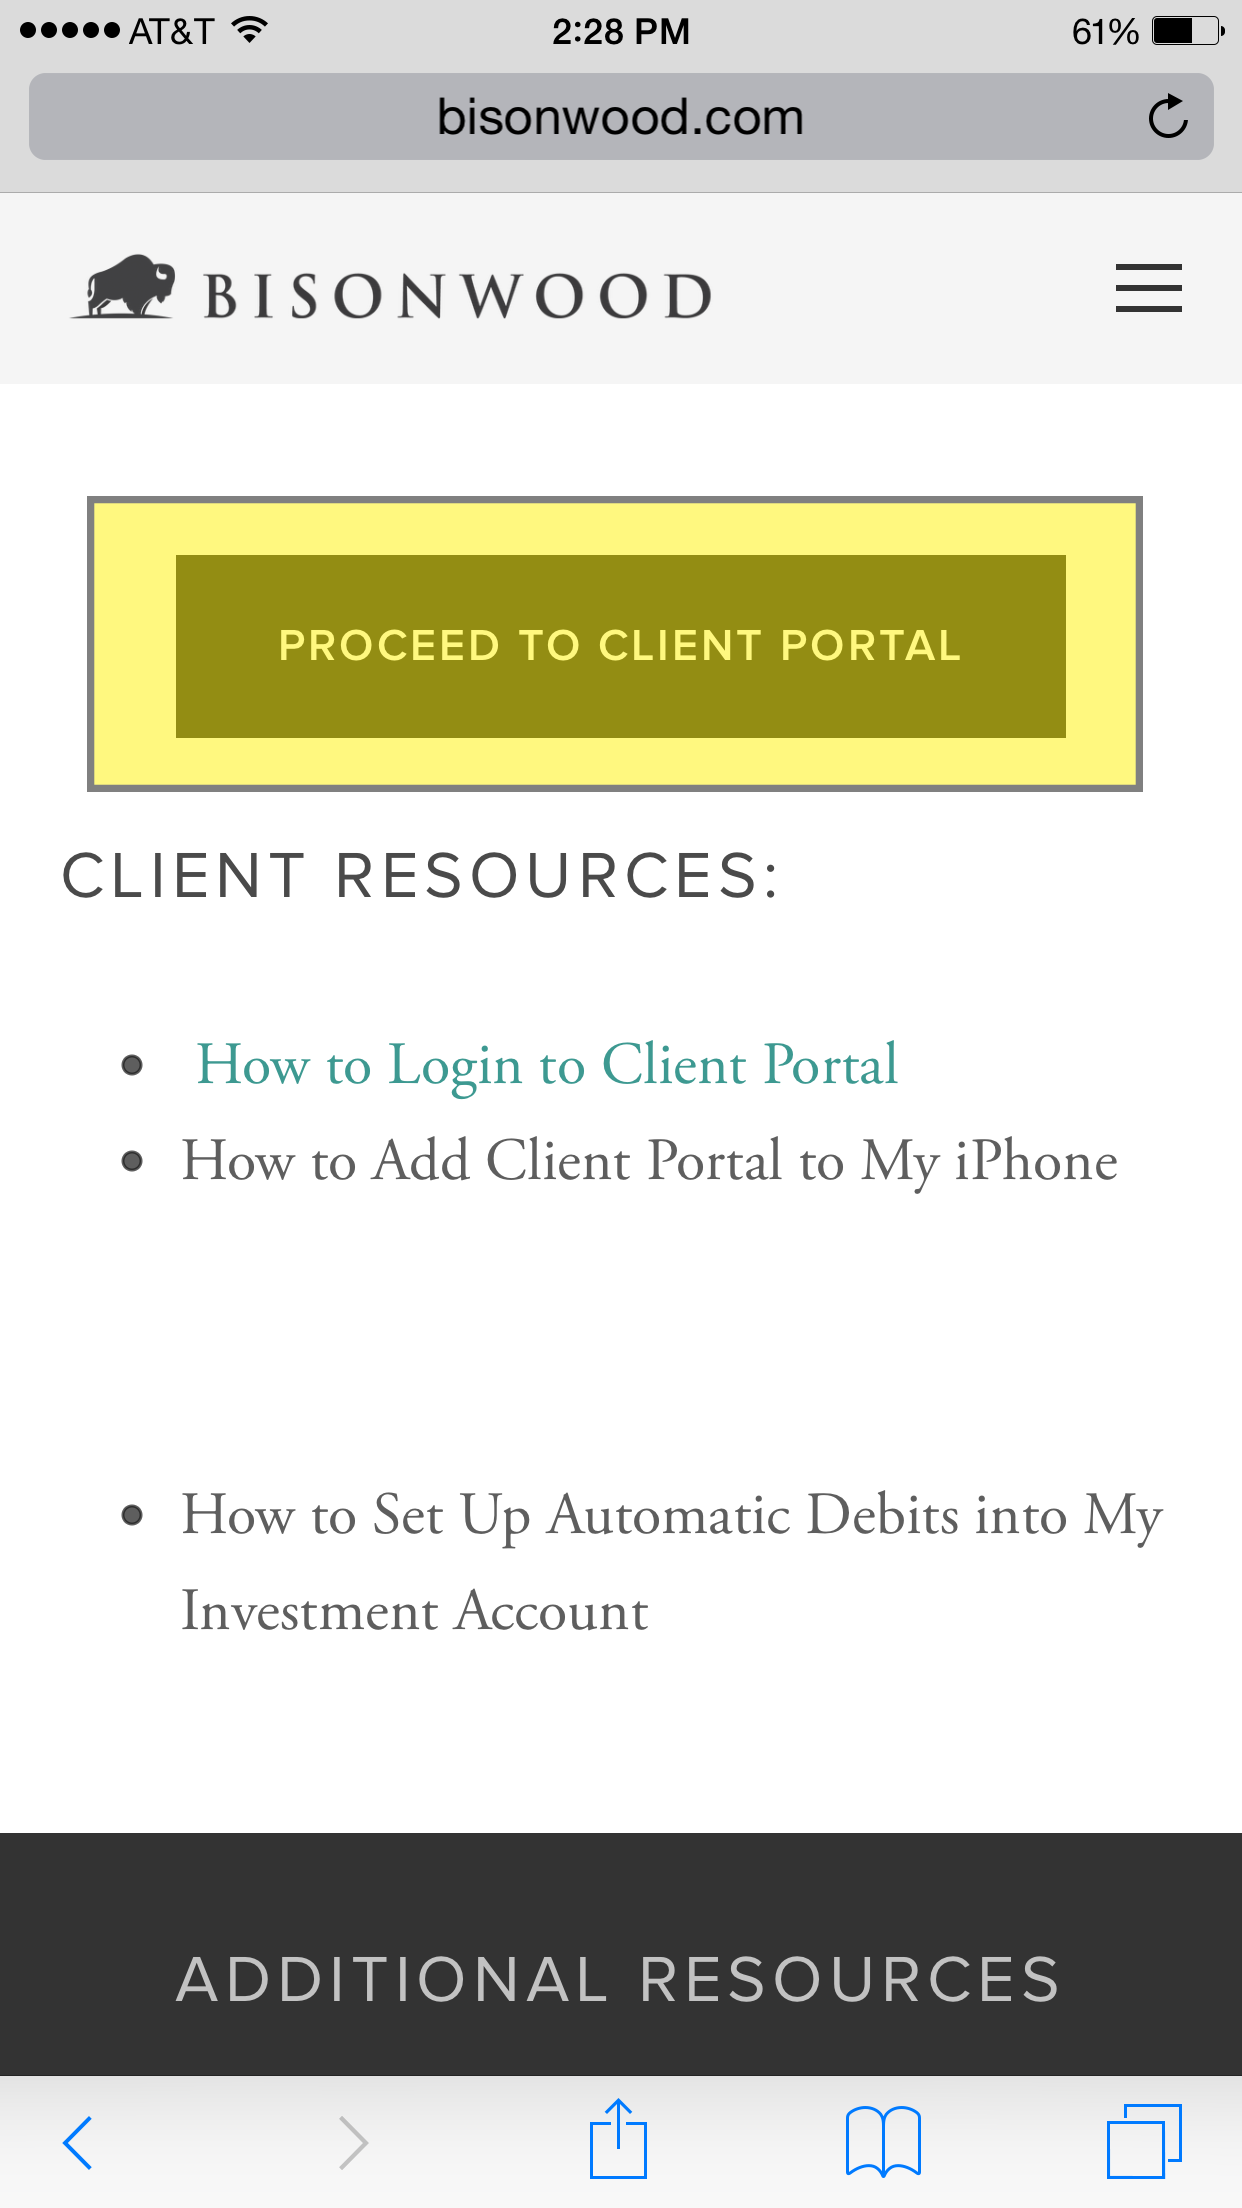 Click the Proceed to Client Login button to go to the secure login page, which is hosted by a third-party.